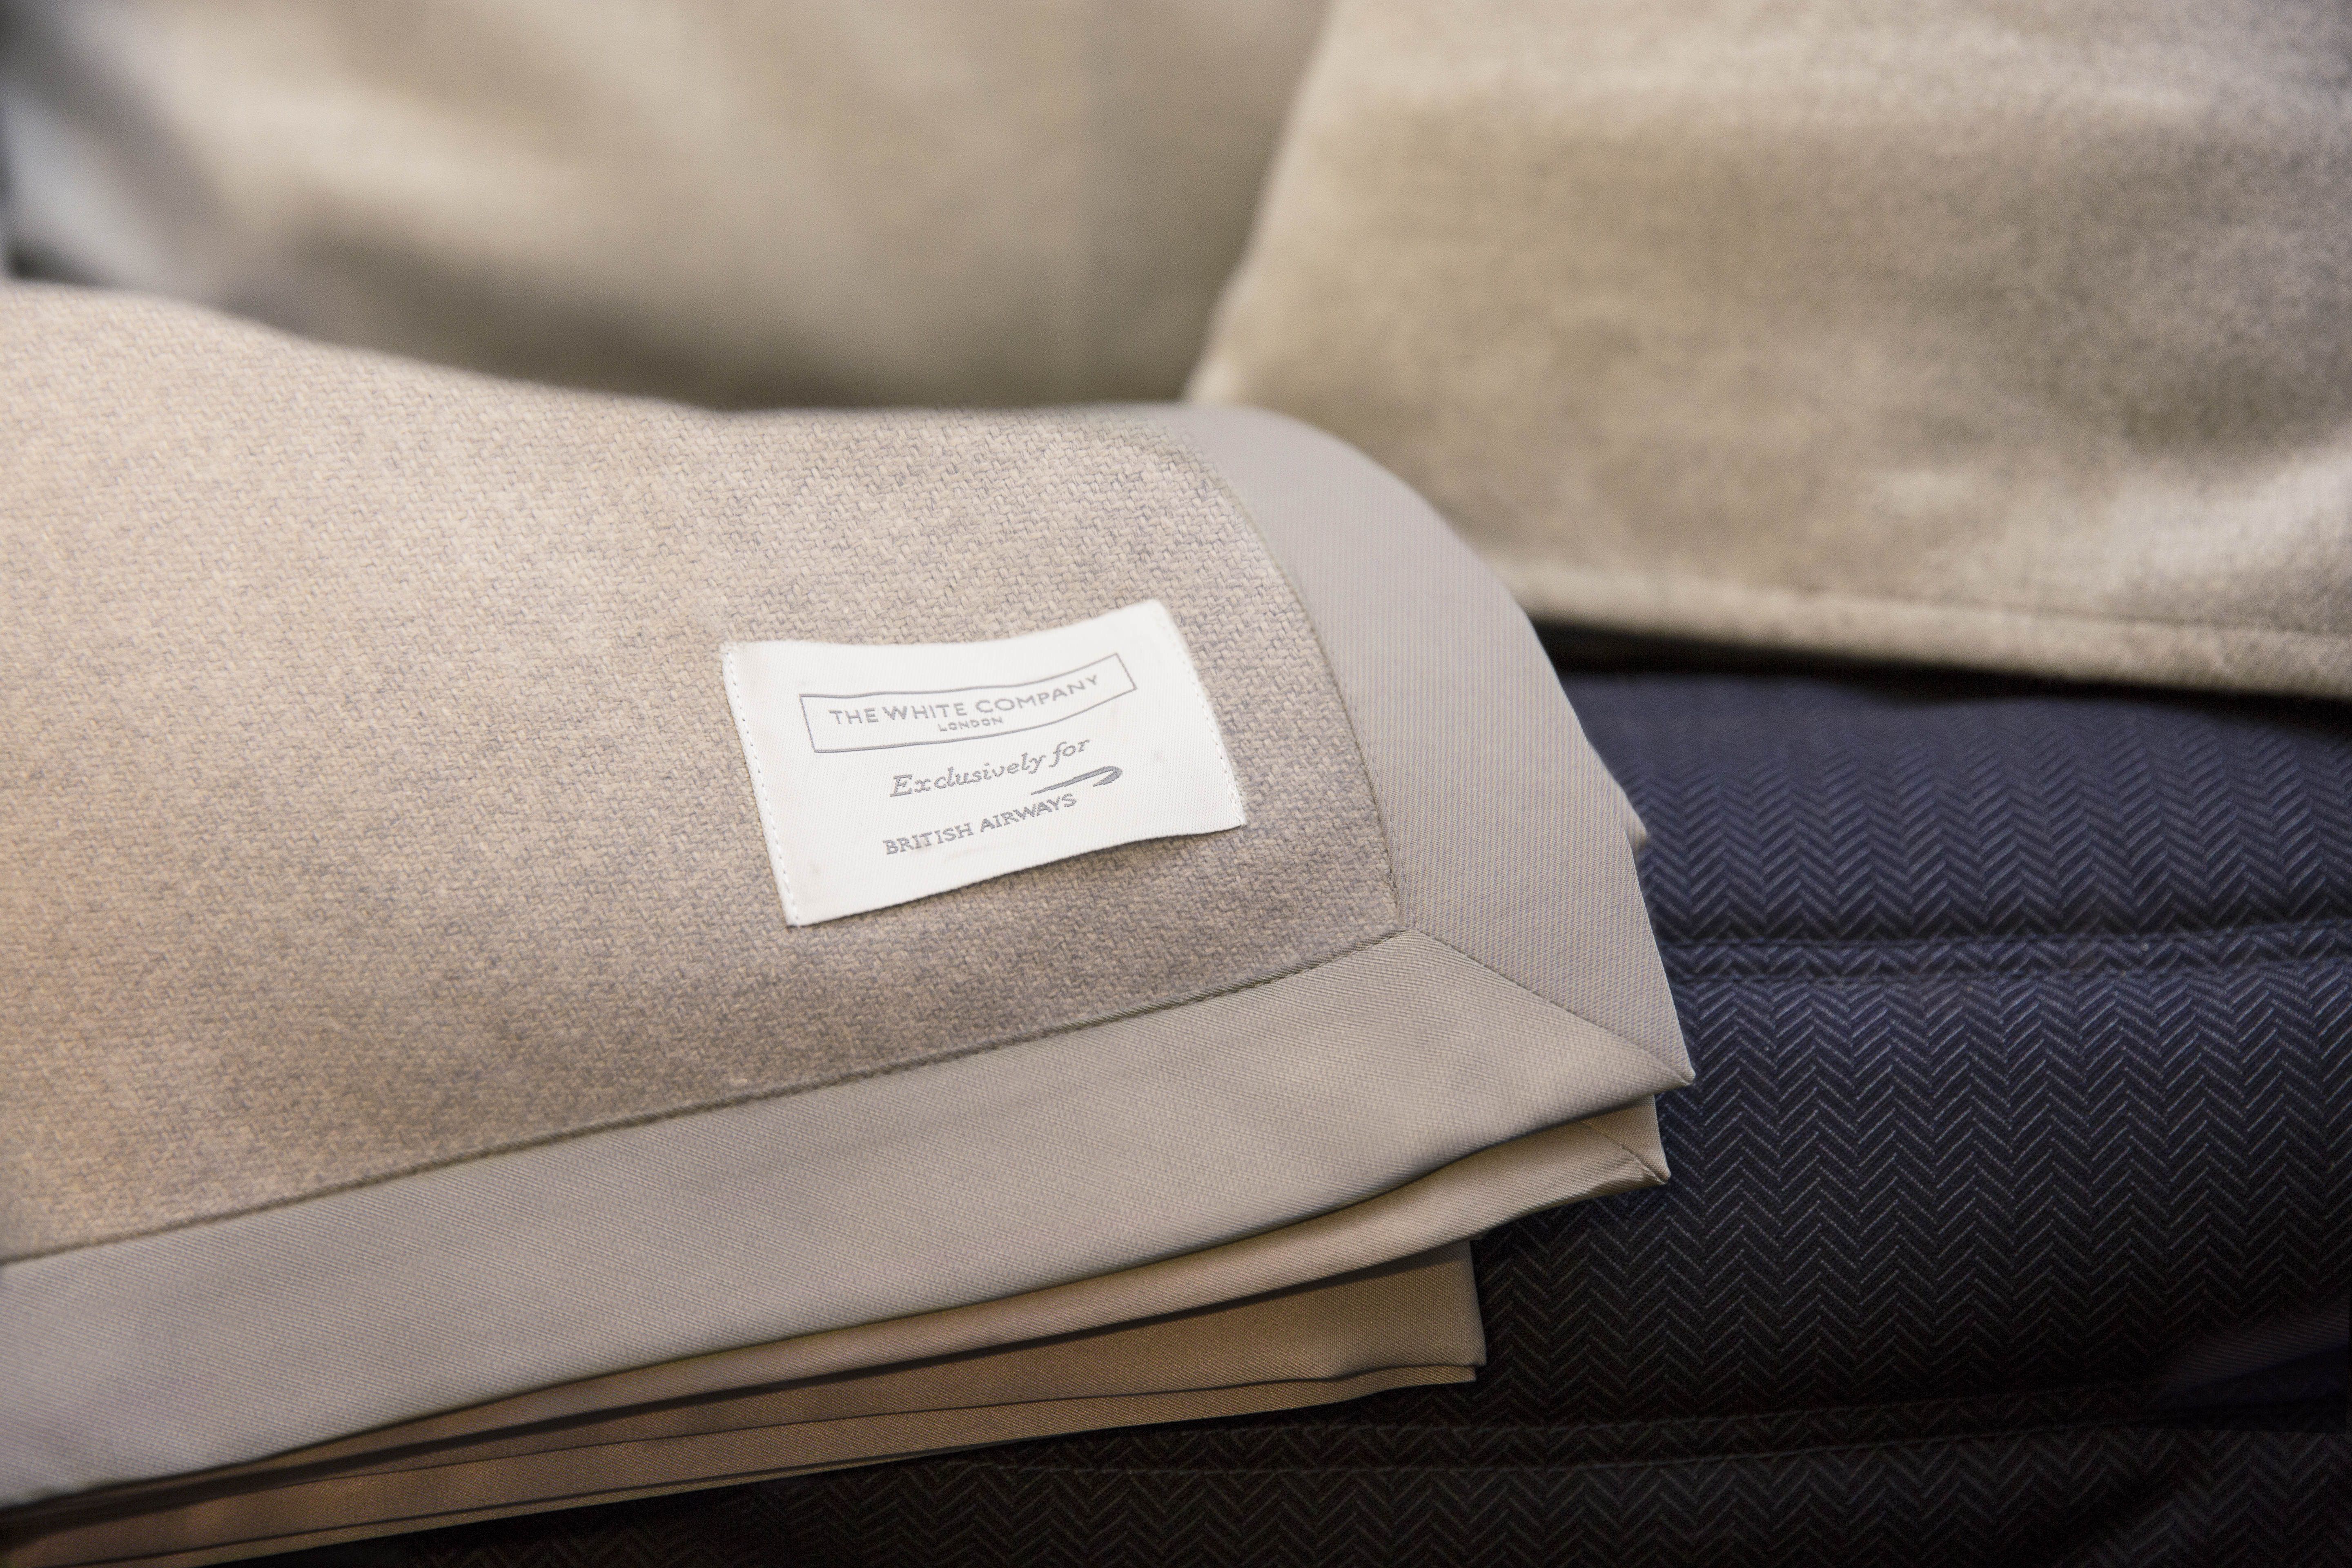 BA new Club World bedding The White Company